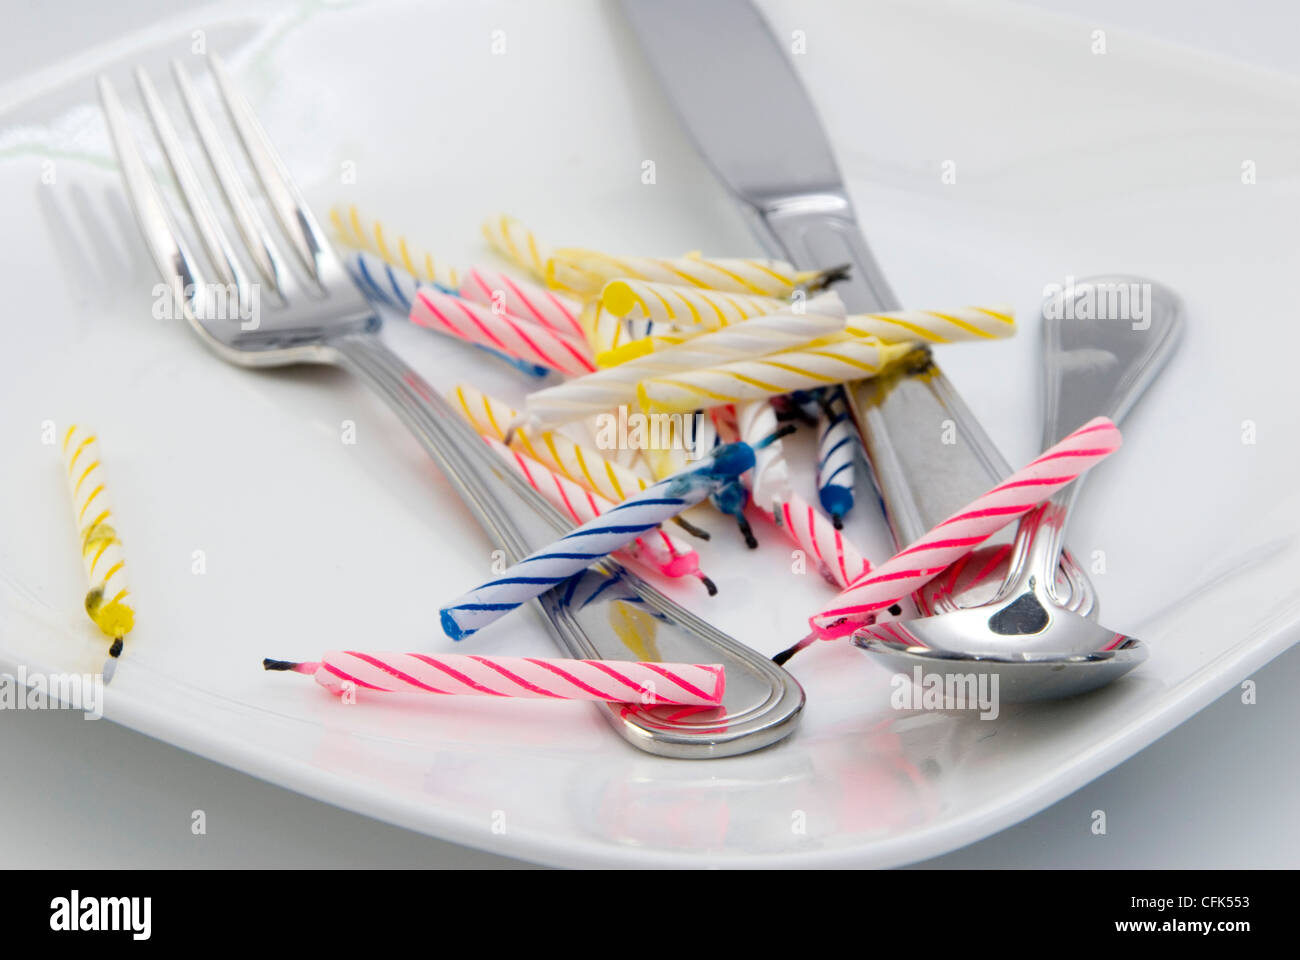 Burnt out birthday candles and utensils on plate - Stock Image